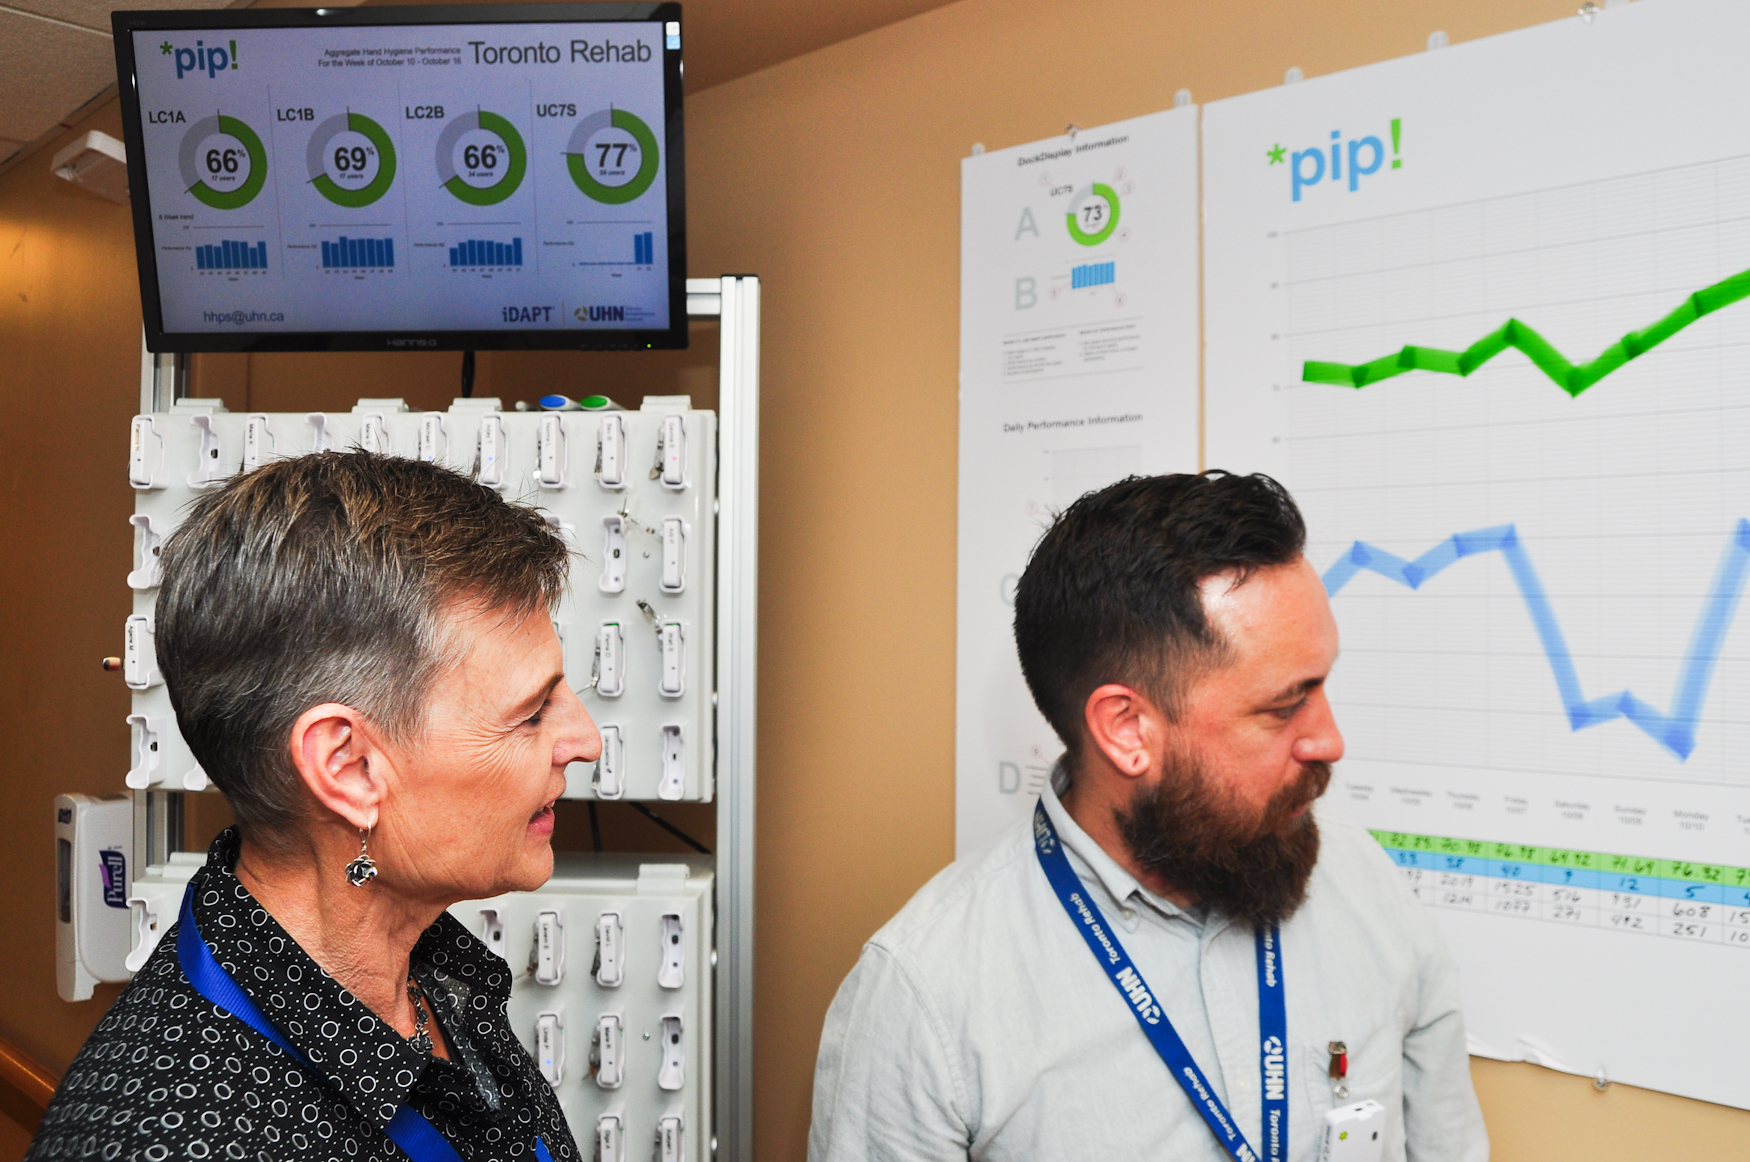 In front of a bank of docked badges, Holliday and Pong (left to right) review a TRI ward's hand-hygiene performance.